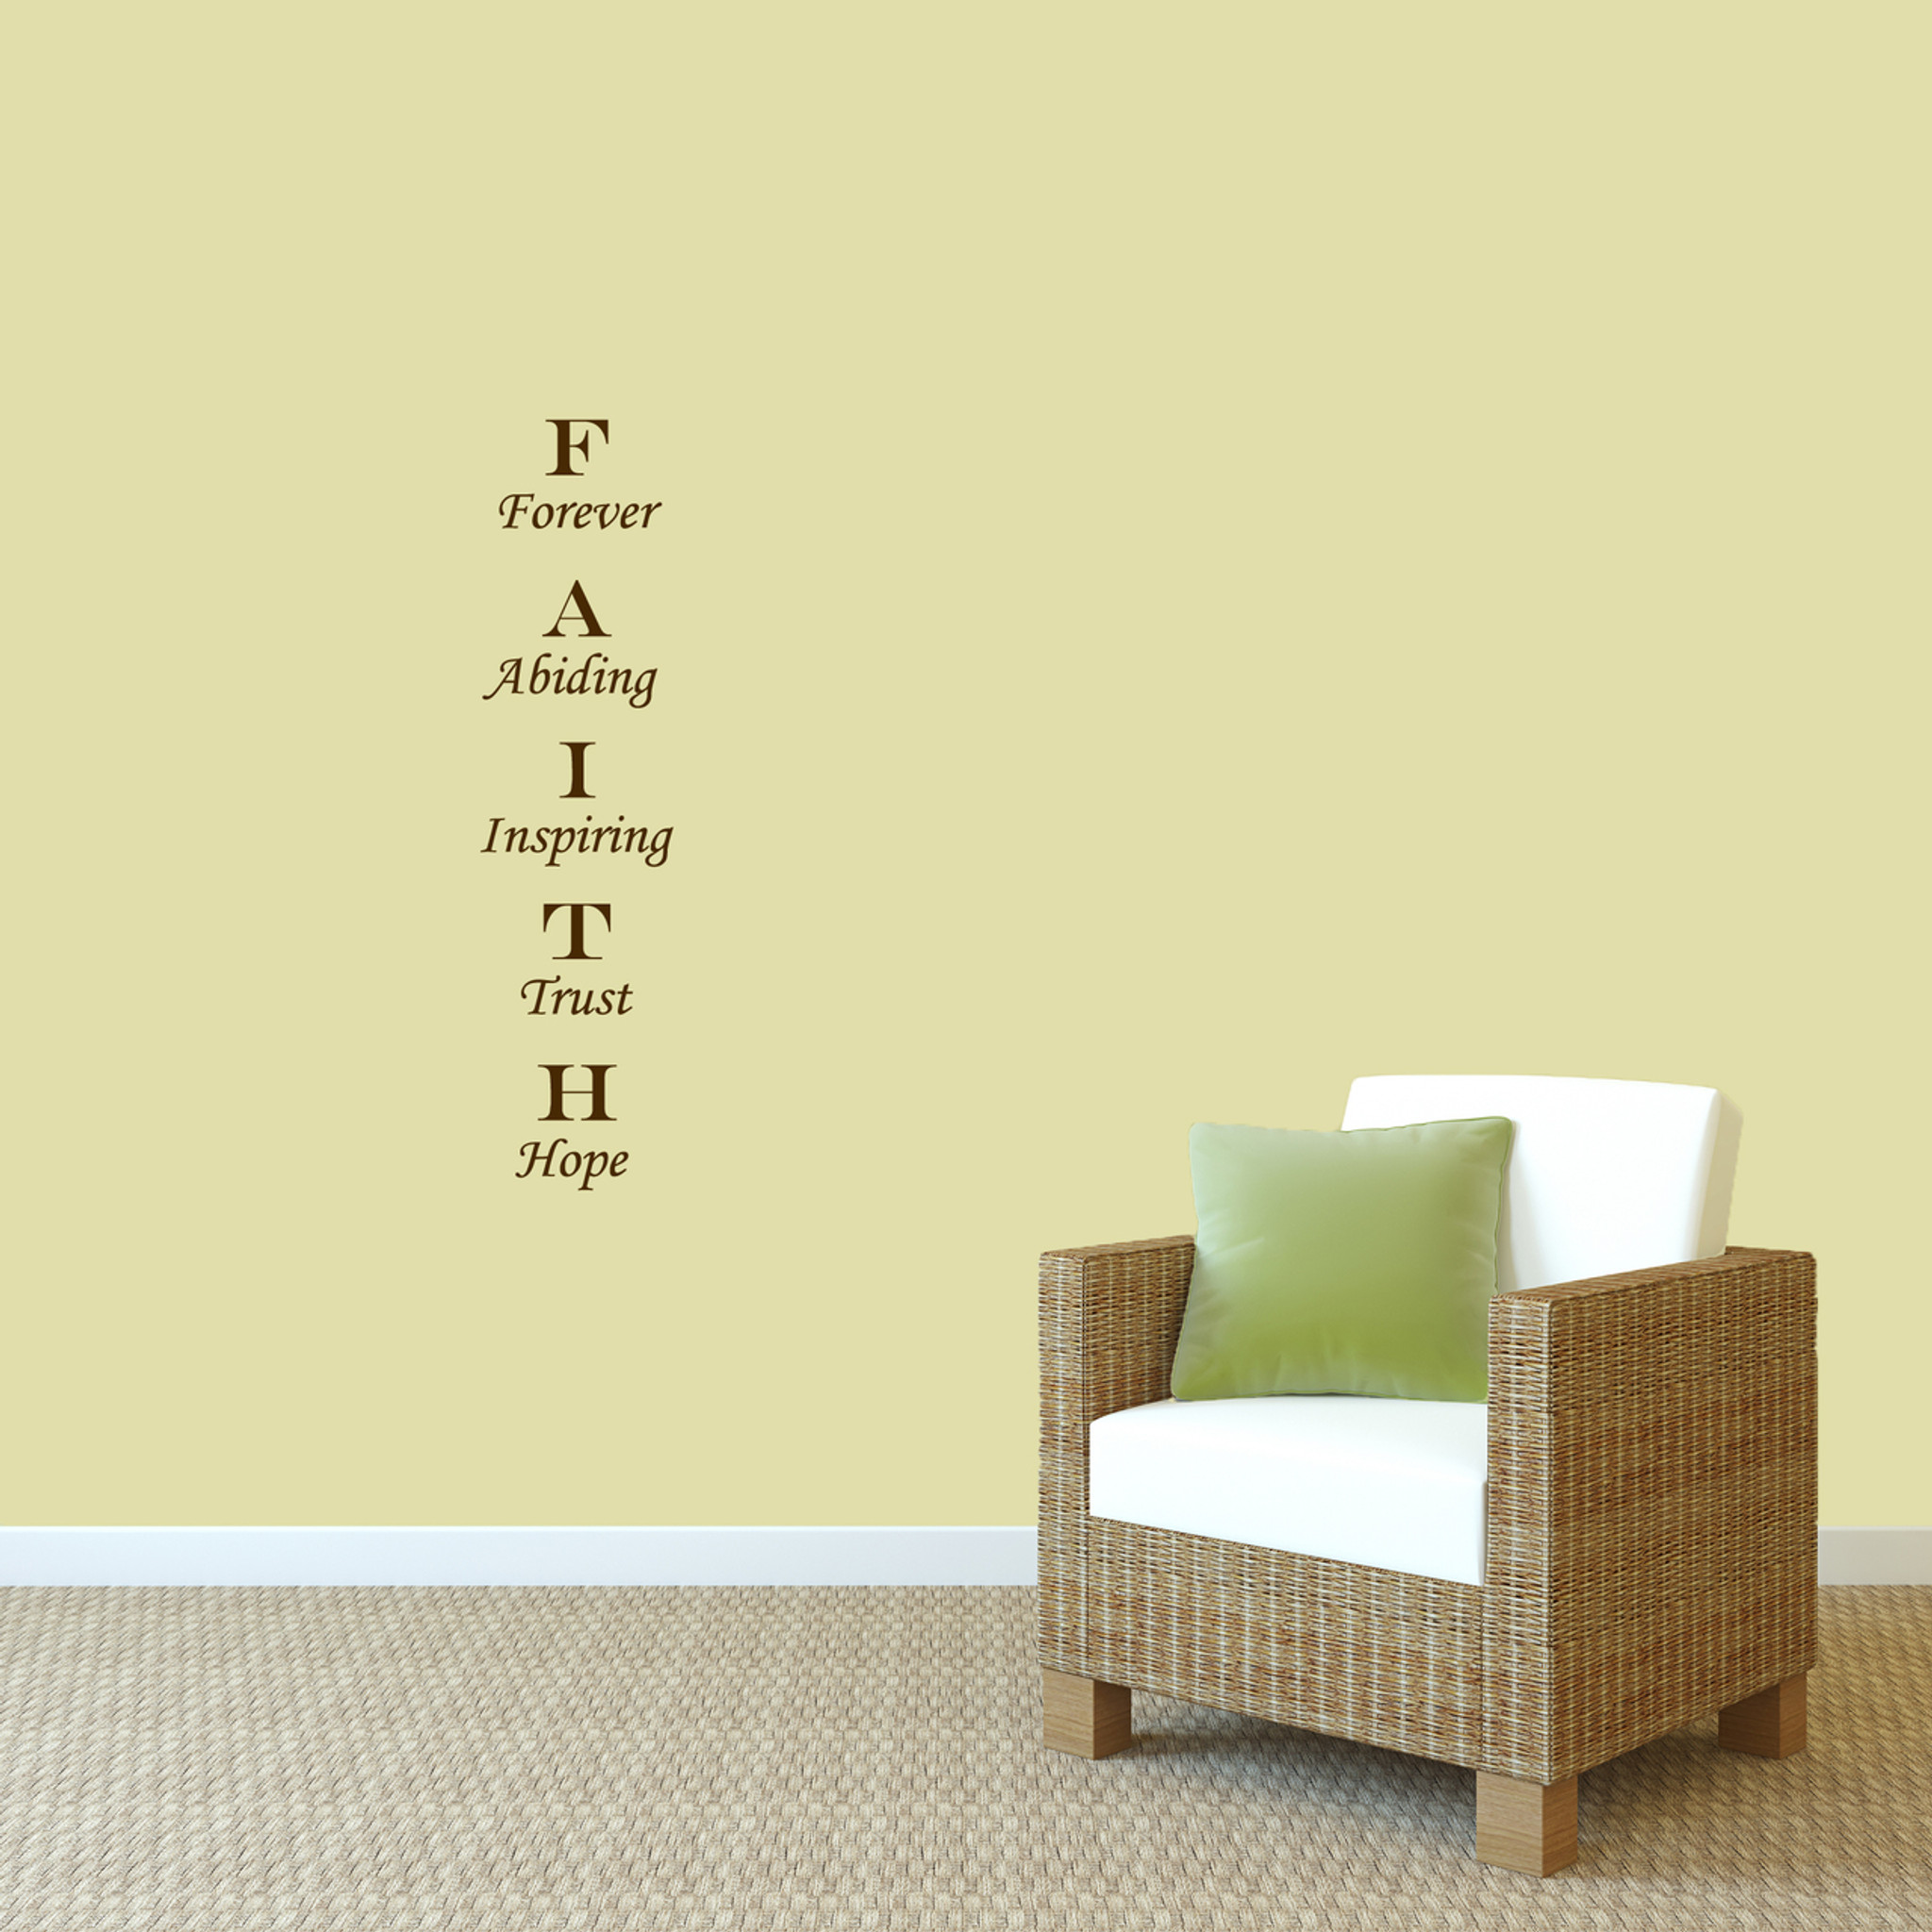 Charming Faith Wall Decor Images - The Wall Art Decorations ...